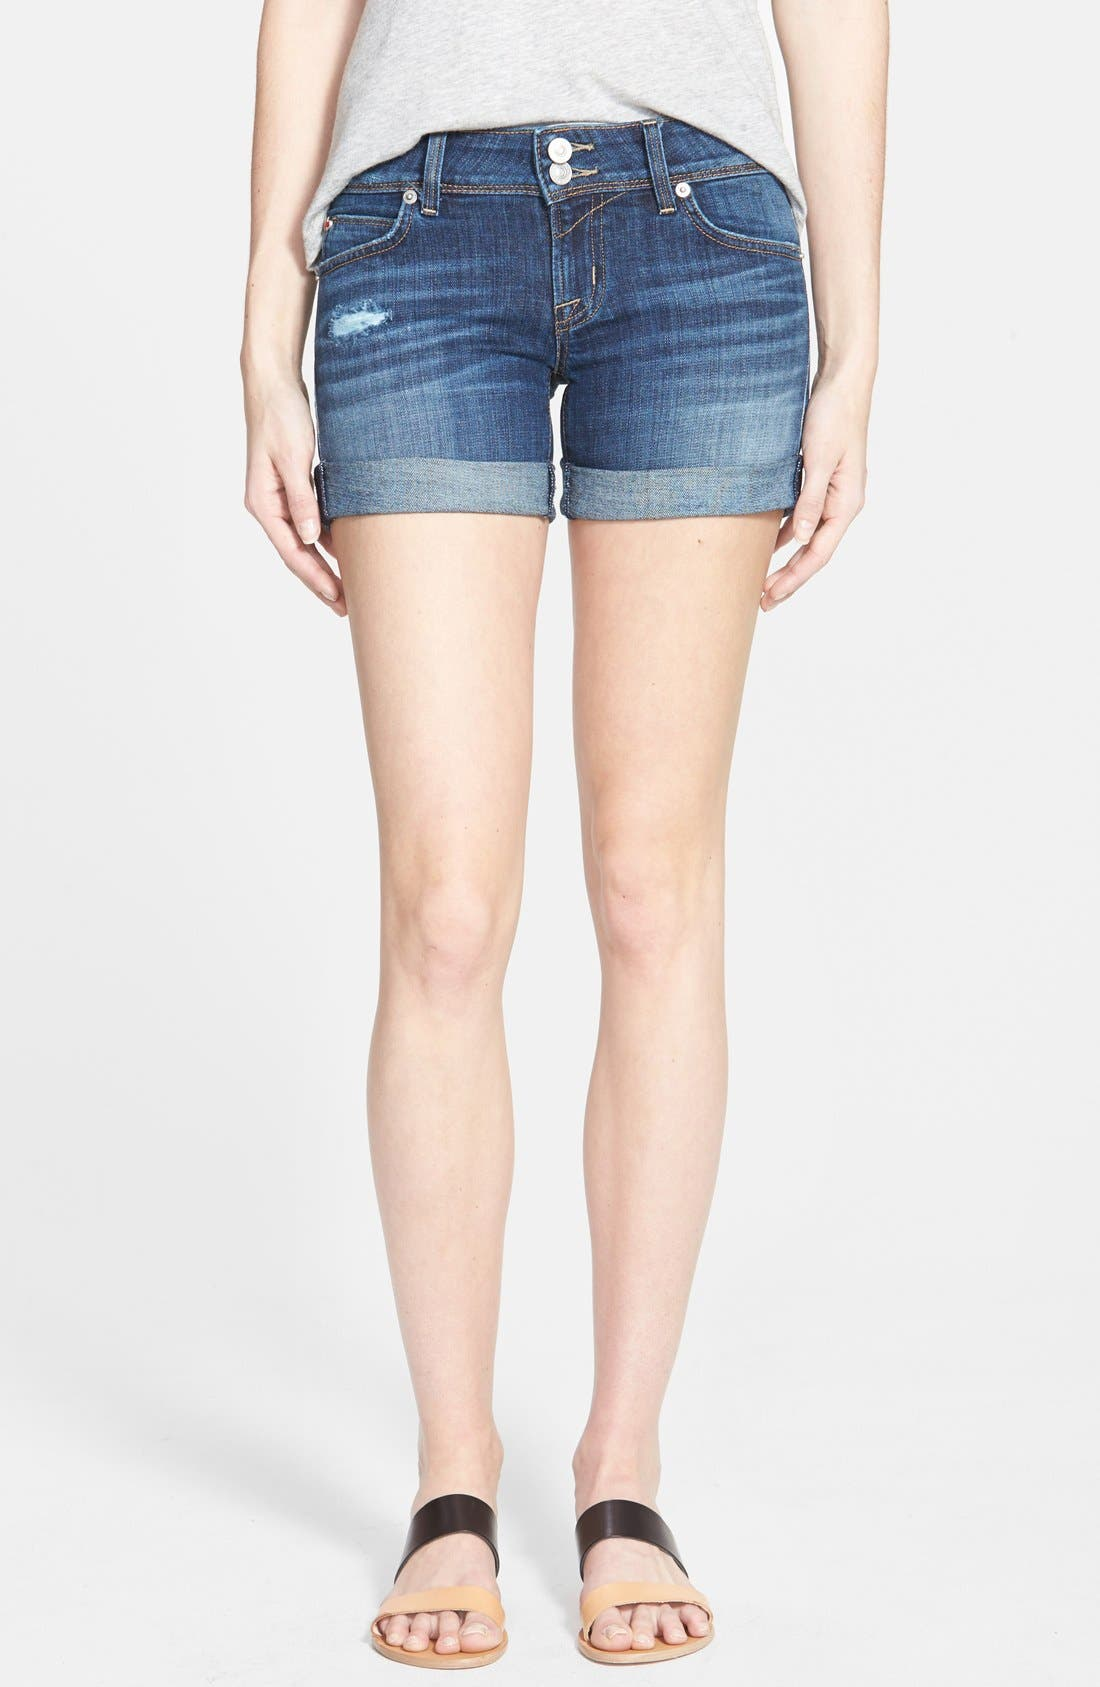 Alternate Image 1 Selected - Hudson Jeans 'Croxley' Cuffed Denim Shorts (Connection)